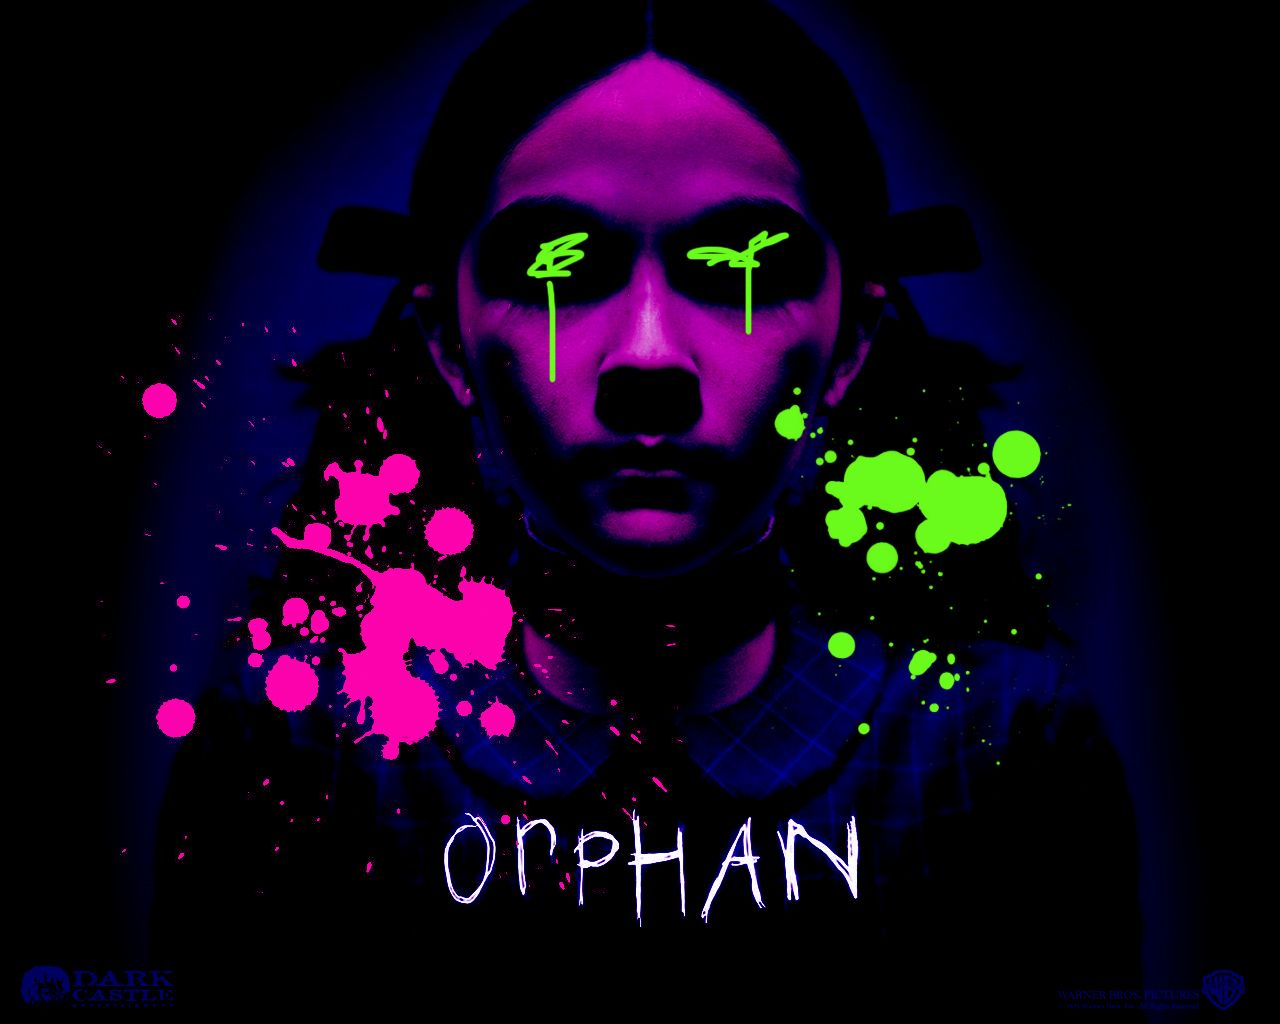 painting on wall orphan movie images orphan wallpaper by tat76 1280x1024